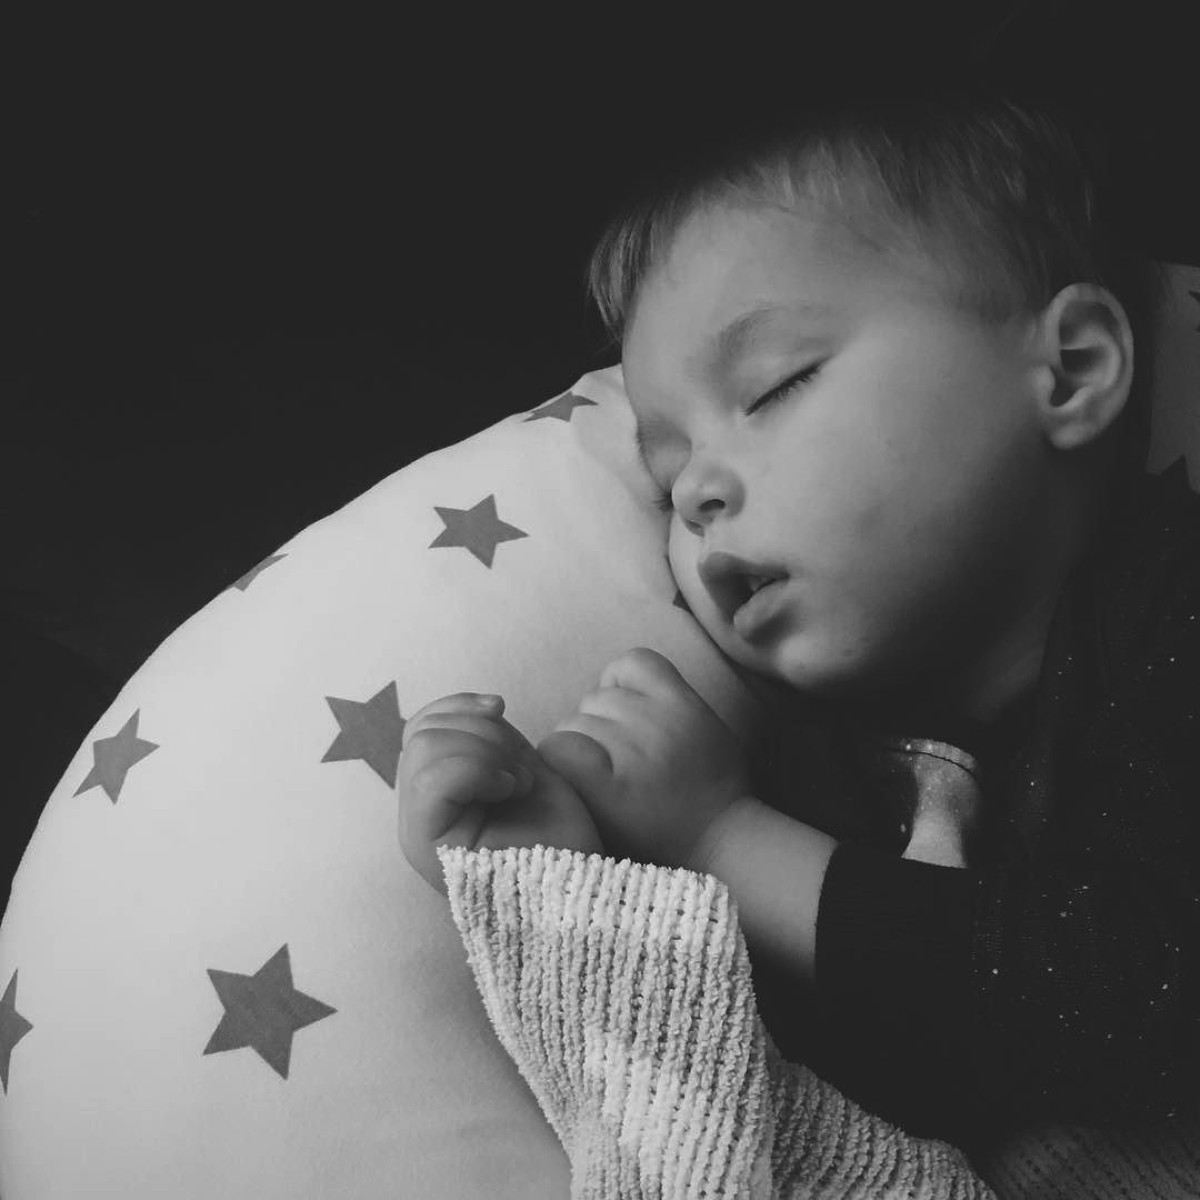 Our month in insta-snaps; October 2016 - Young toddler boy napping on Widgey starry nursing/feeding cushion